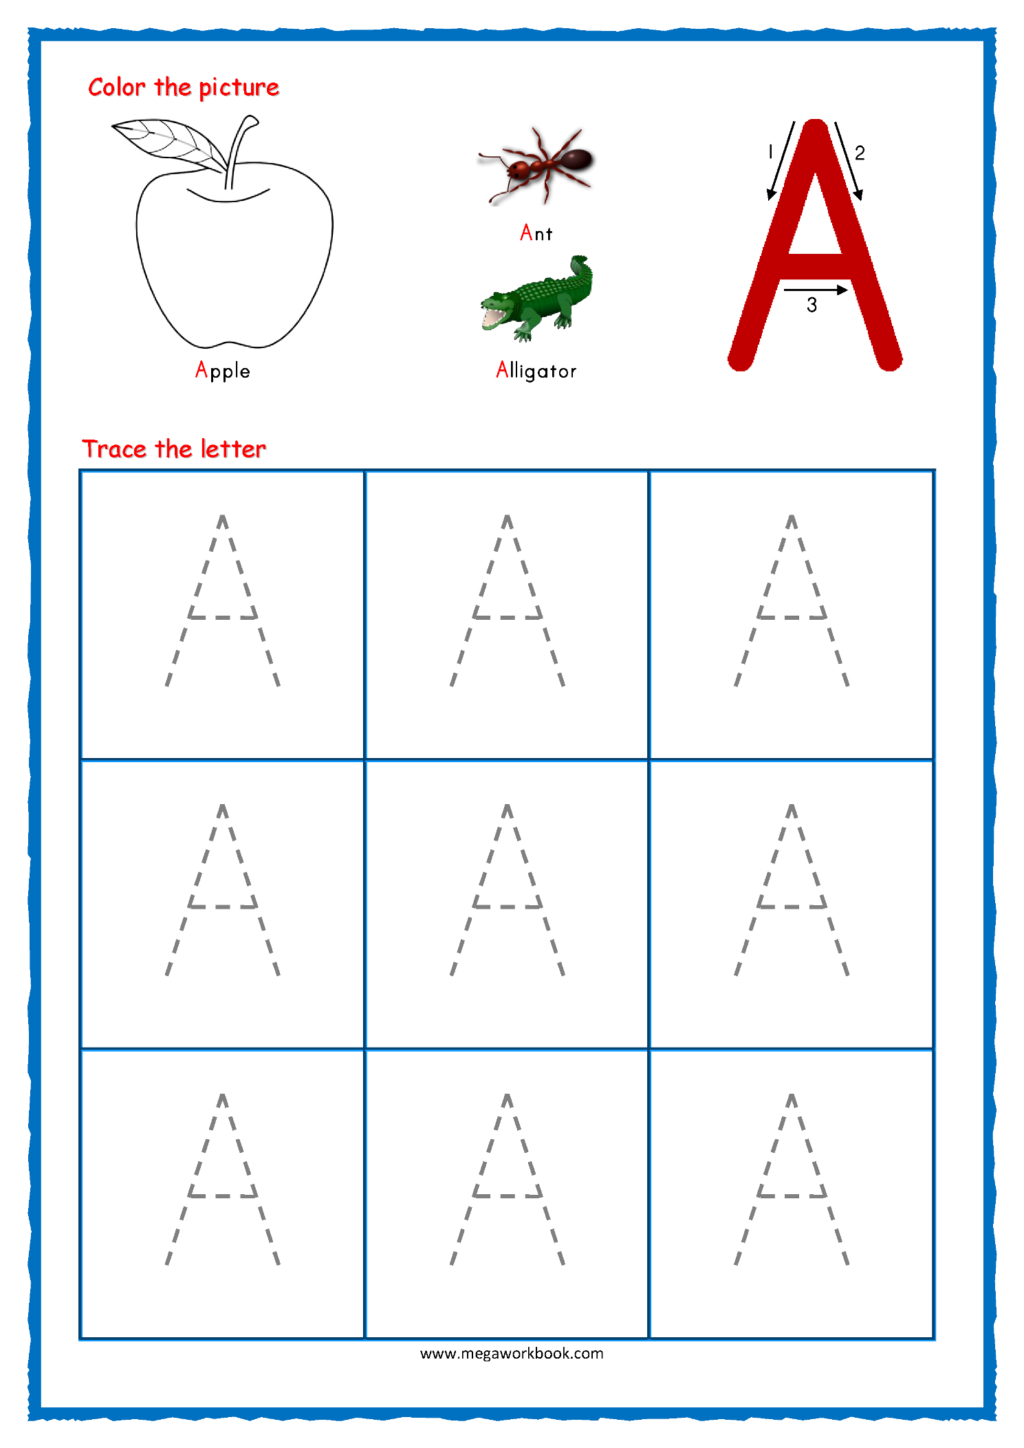 Worksheet ~ Capital Letter Tracing With Crayons 01 Alphabet inside Alphabet Tracing Sheet Free